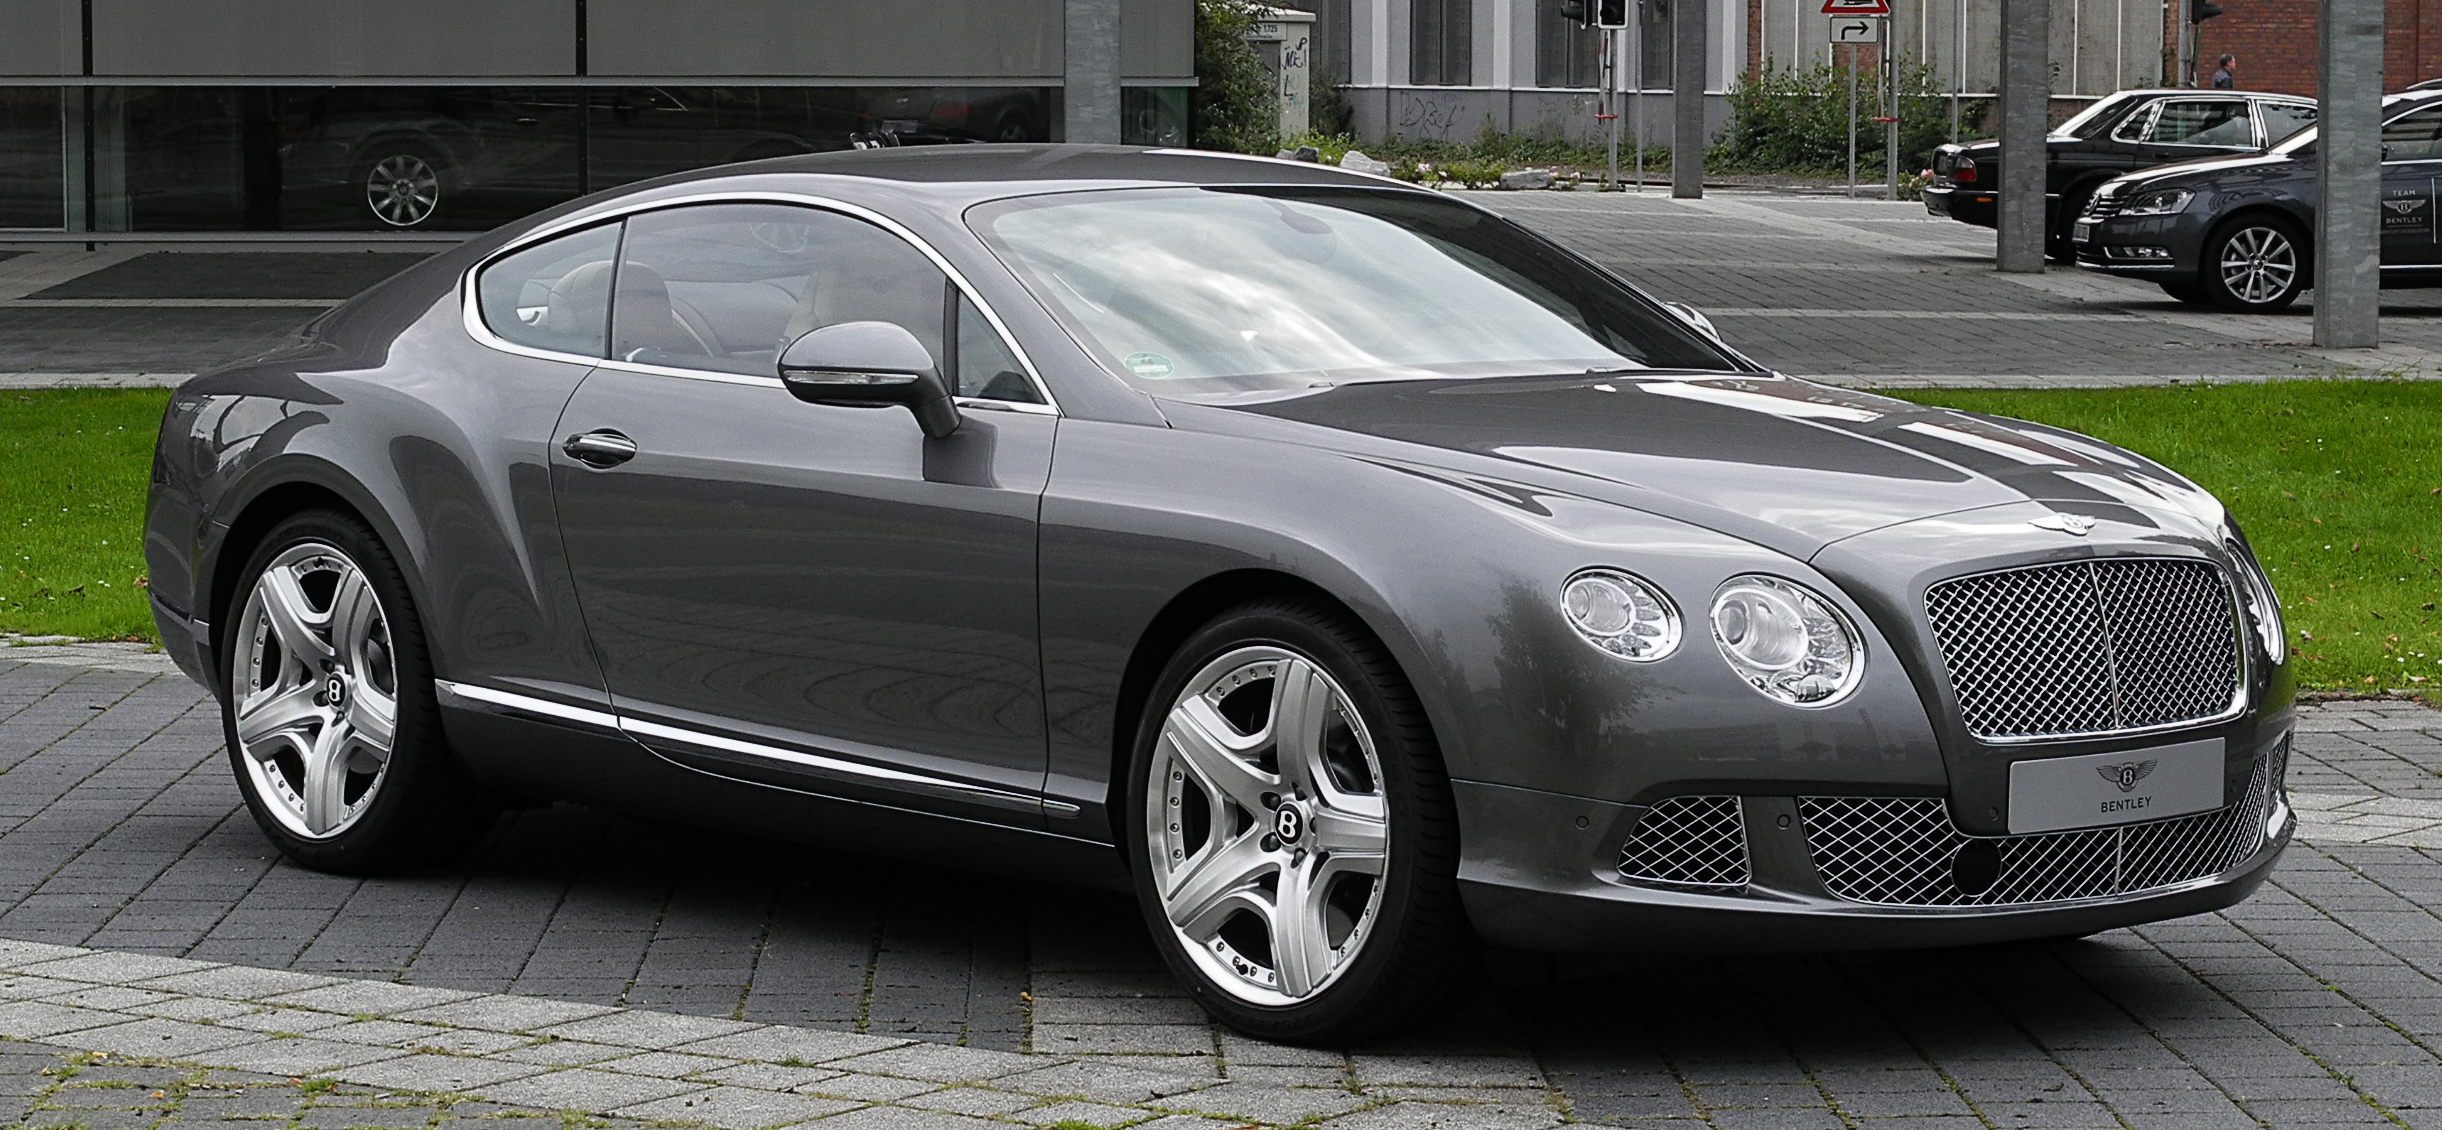 file bentley continental gt ii frontansicht 5 30 august 2011 d wikimedia. Black Bedroom Furniture Sets. Home Design Ideas